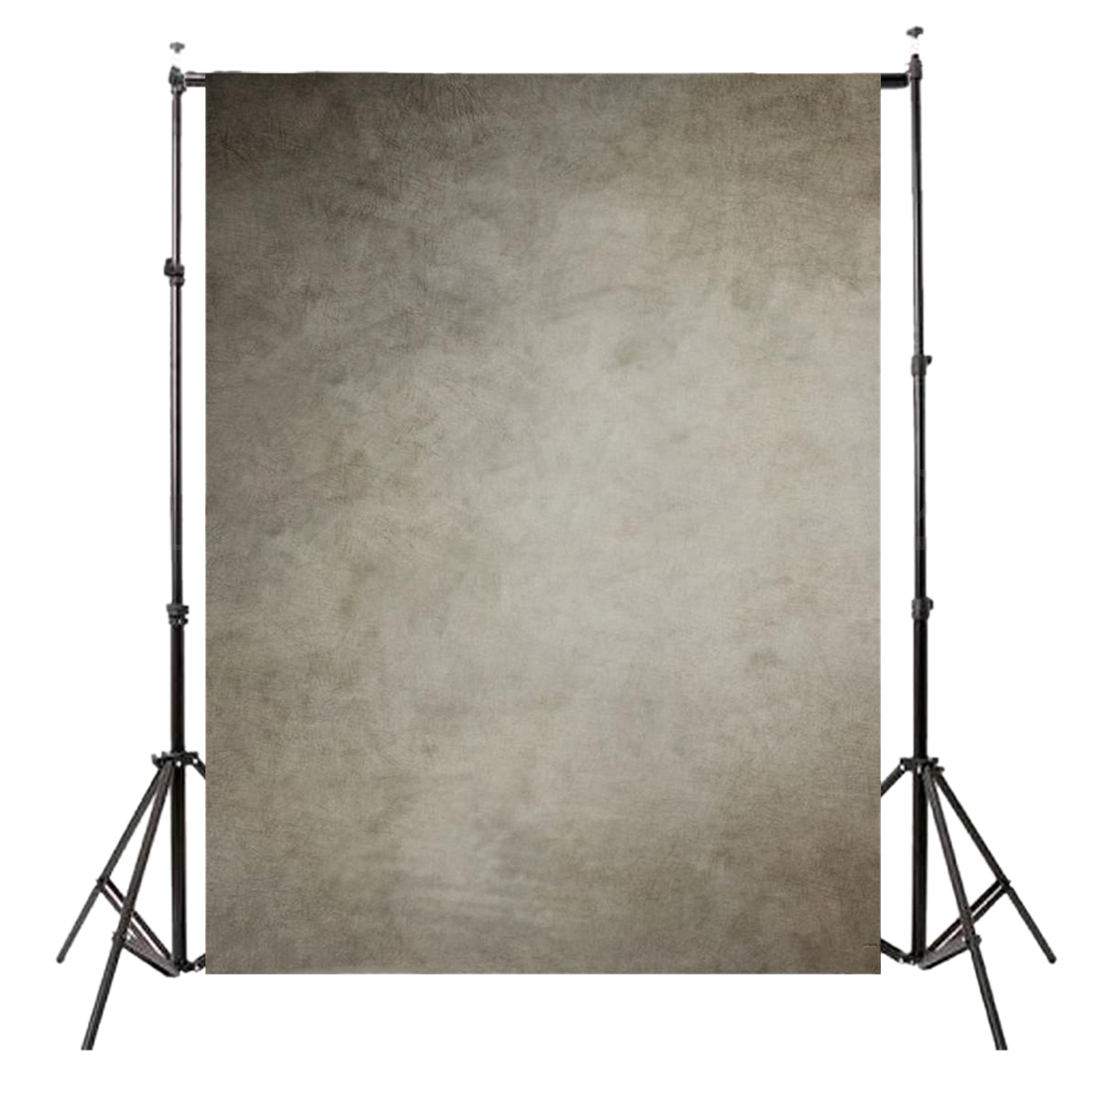 5x7FT Vinyl Photography Backdrop Photo Background, Retro concrete wall